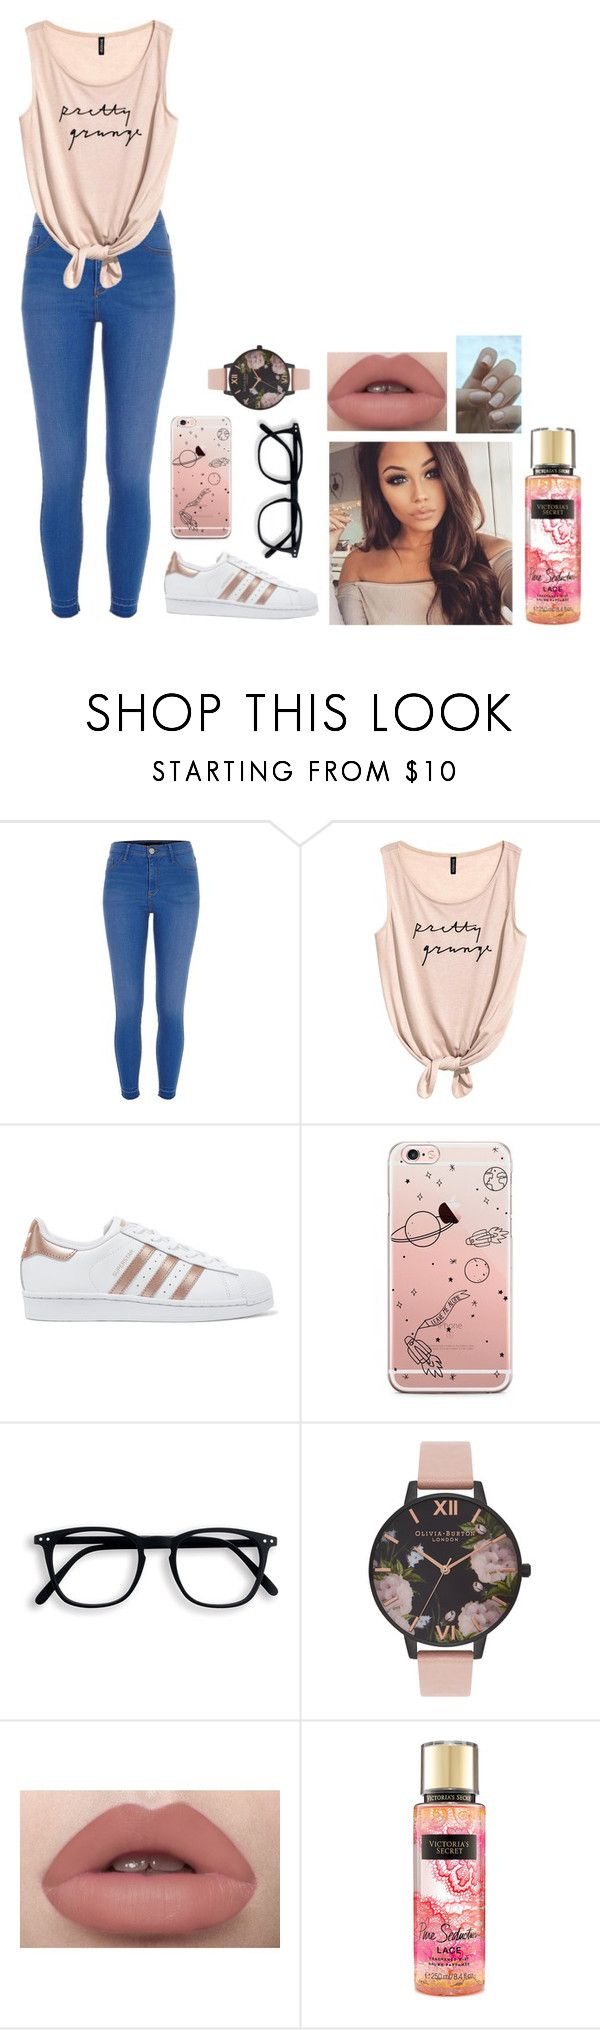 """""""Pastel Pink"""" by official-jessica ❤ liked on Polyvore featuring River Island, adidas Originals, Olivia Burton and Victoria's Secret"""